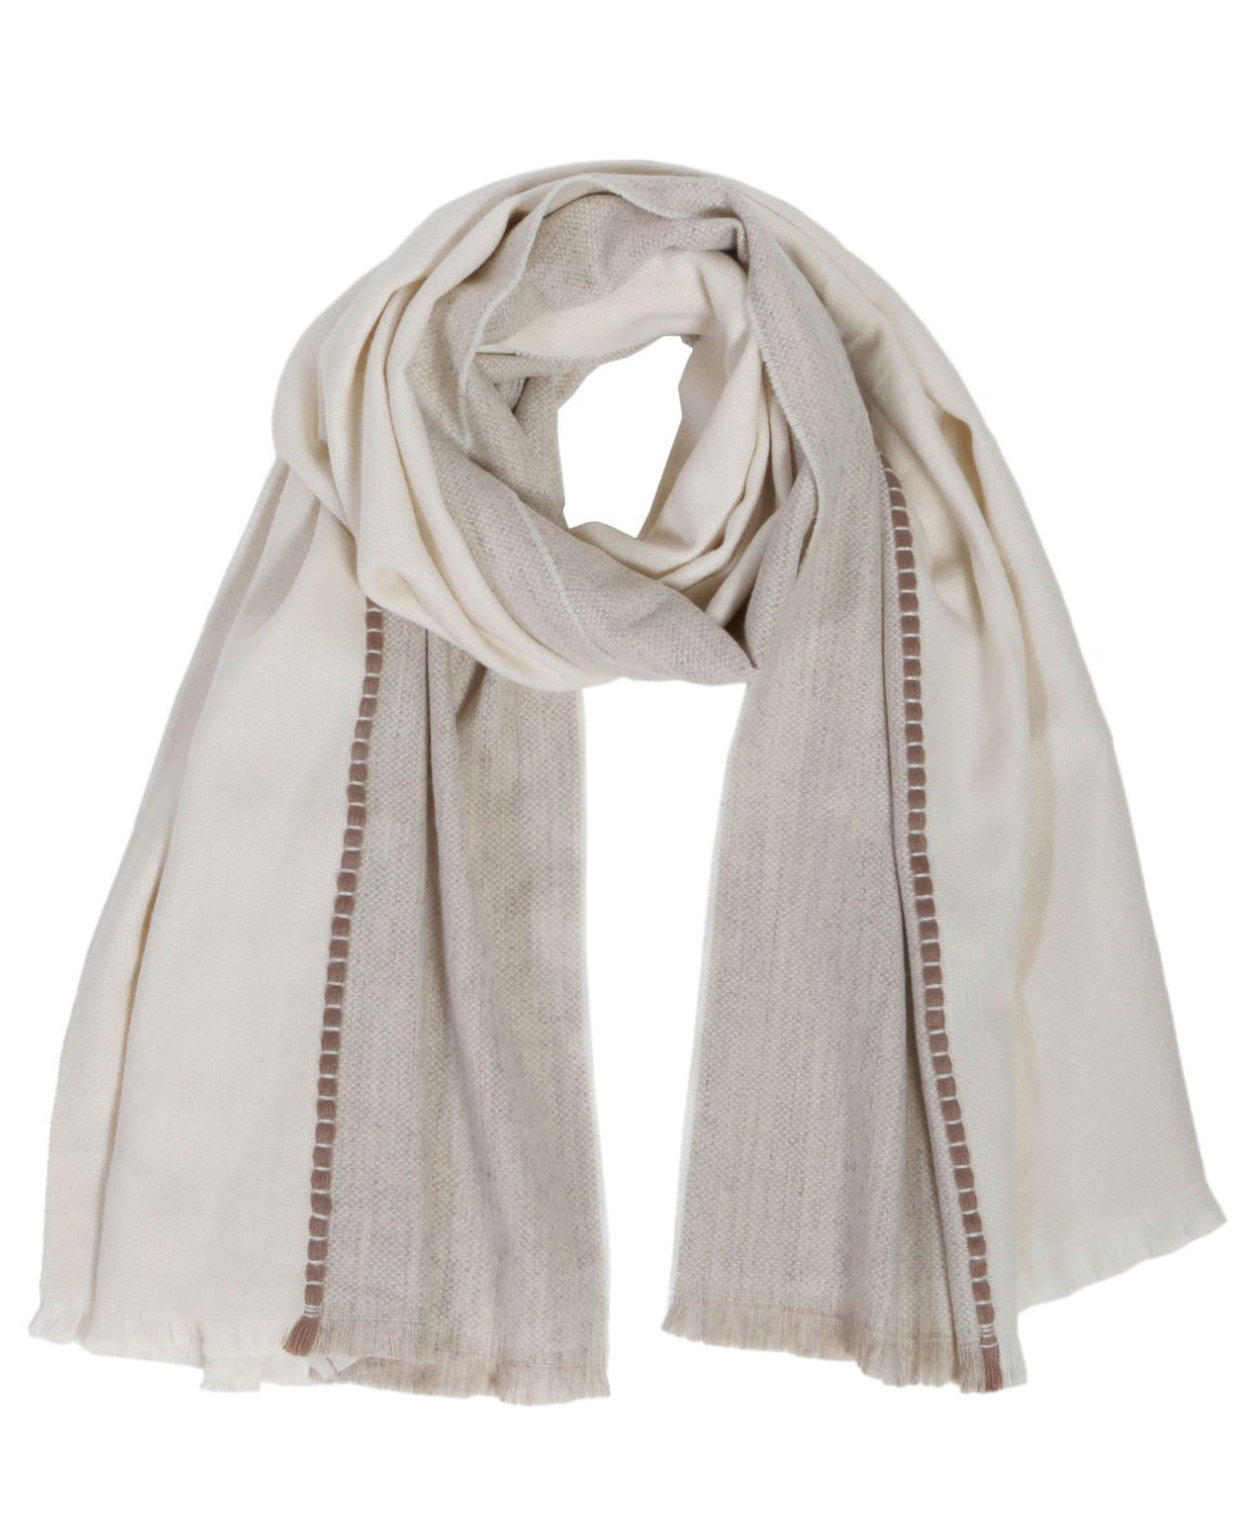 a taupe and cream colored scarf